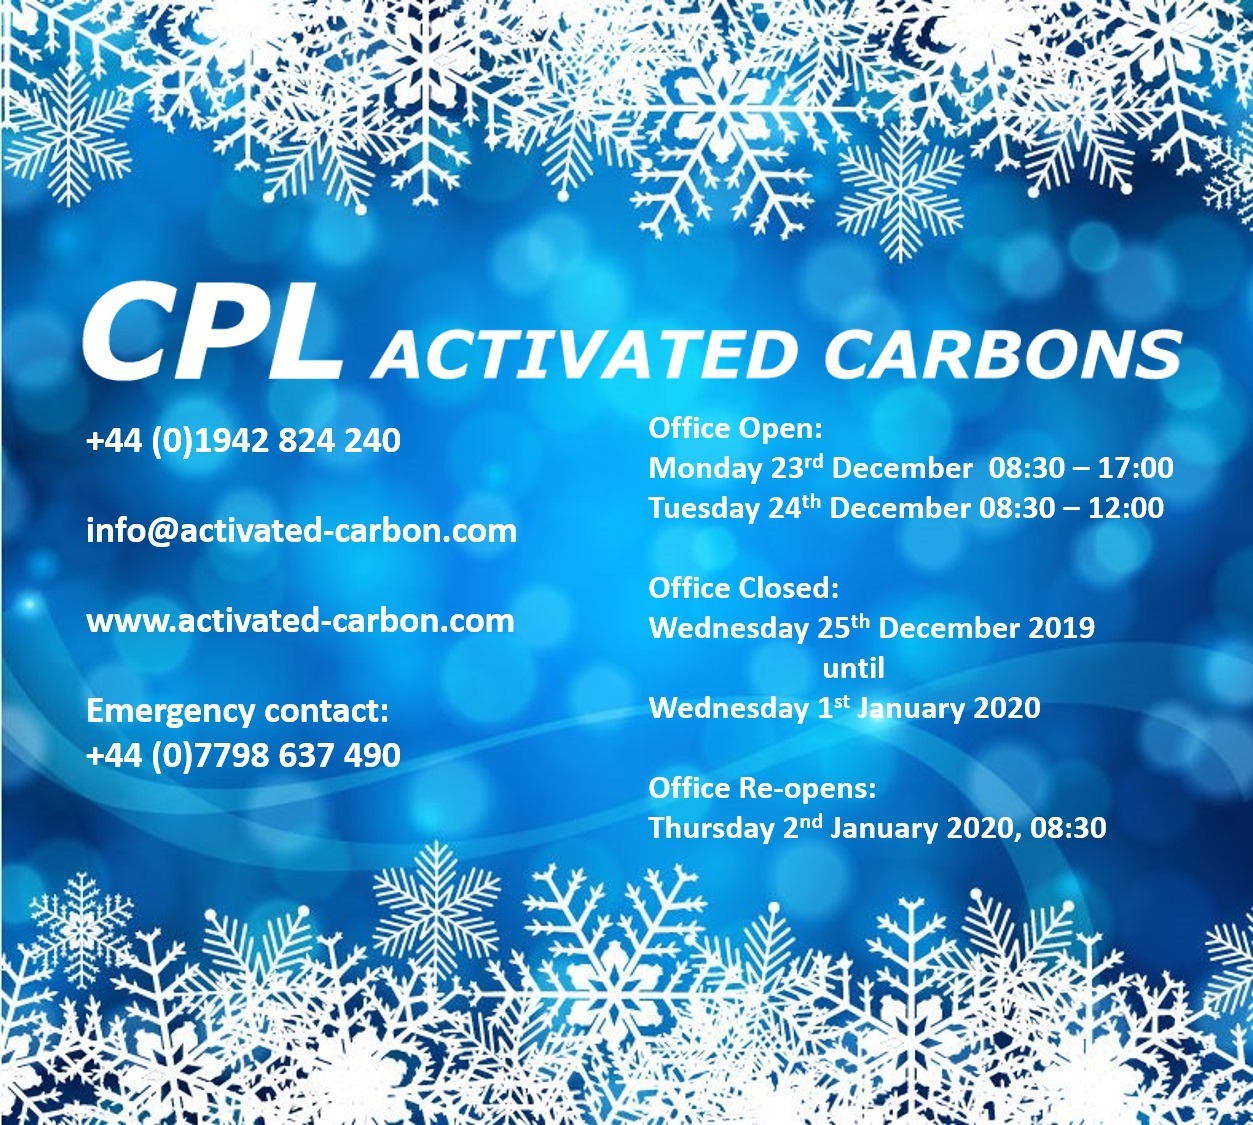 CPL Activated Carbons 2019 Christmas Opening Times